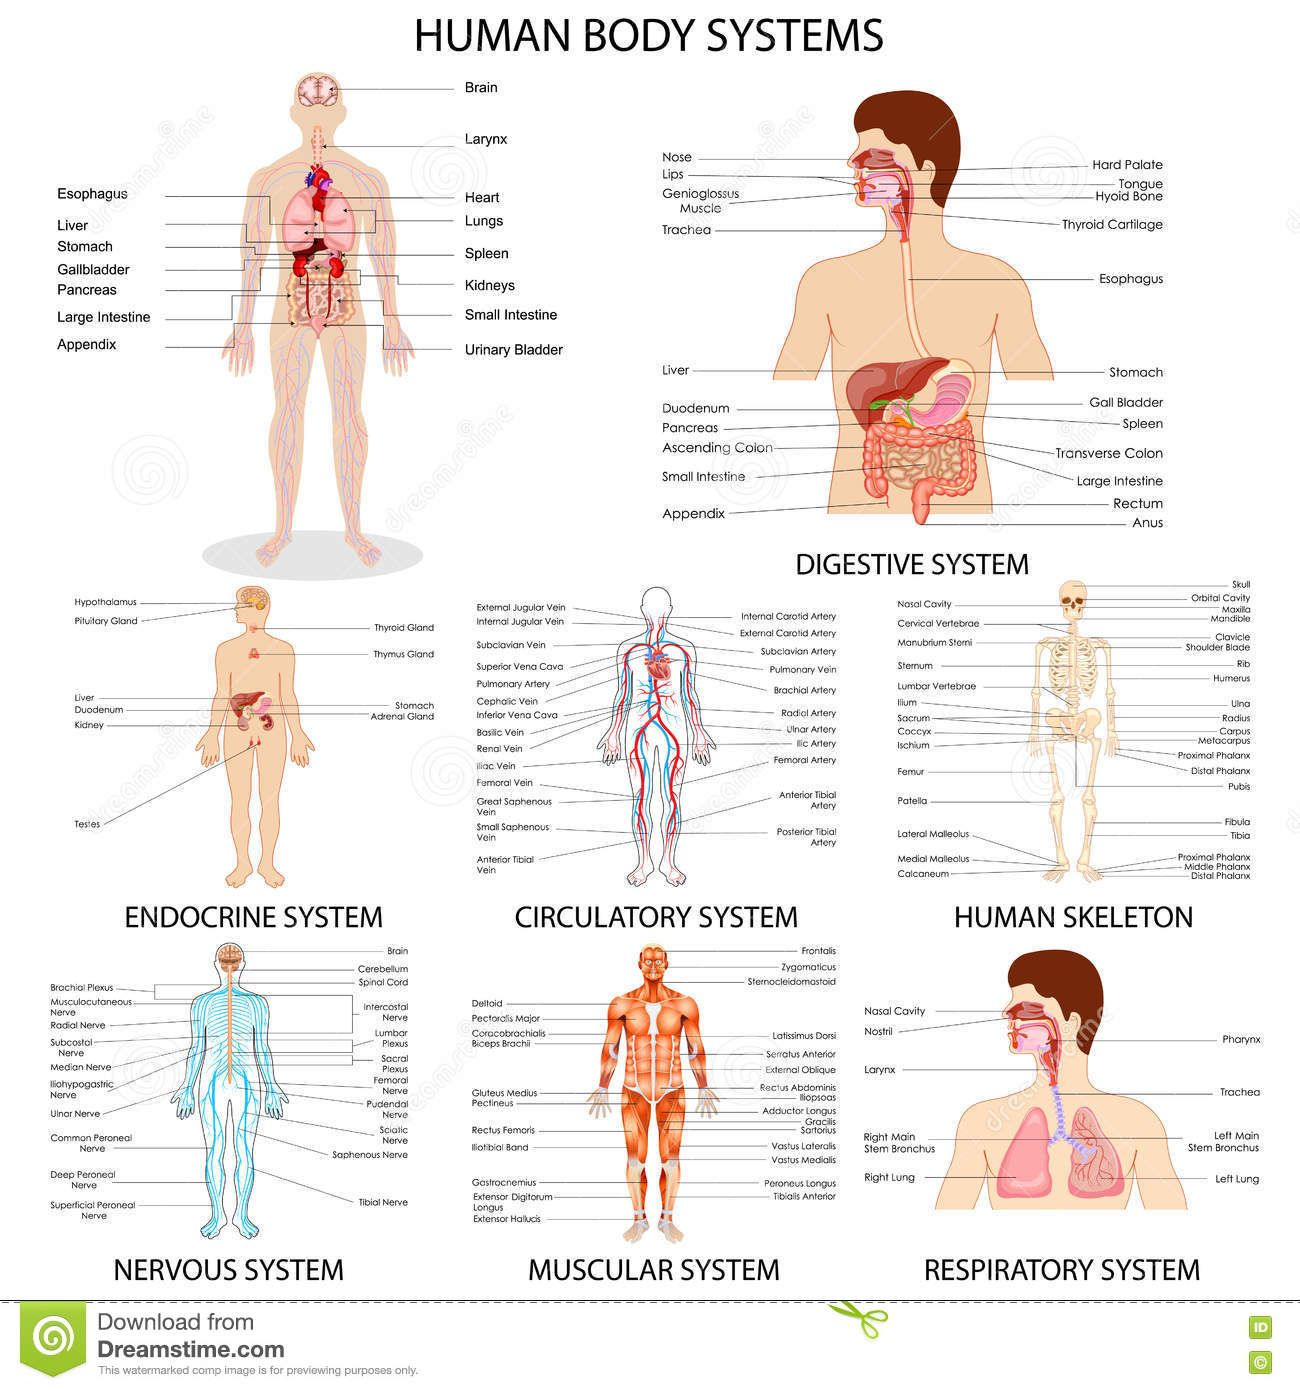 Human Organ Systems Chart Human Body Systems Annual